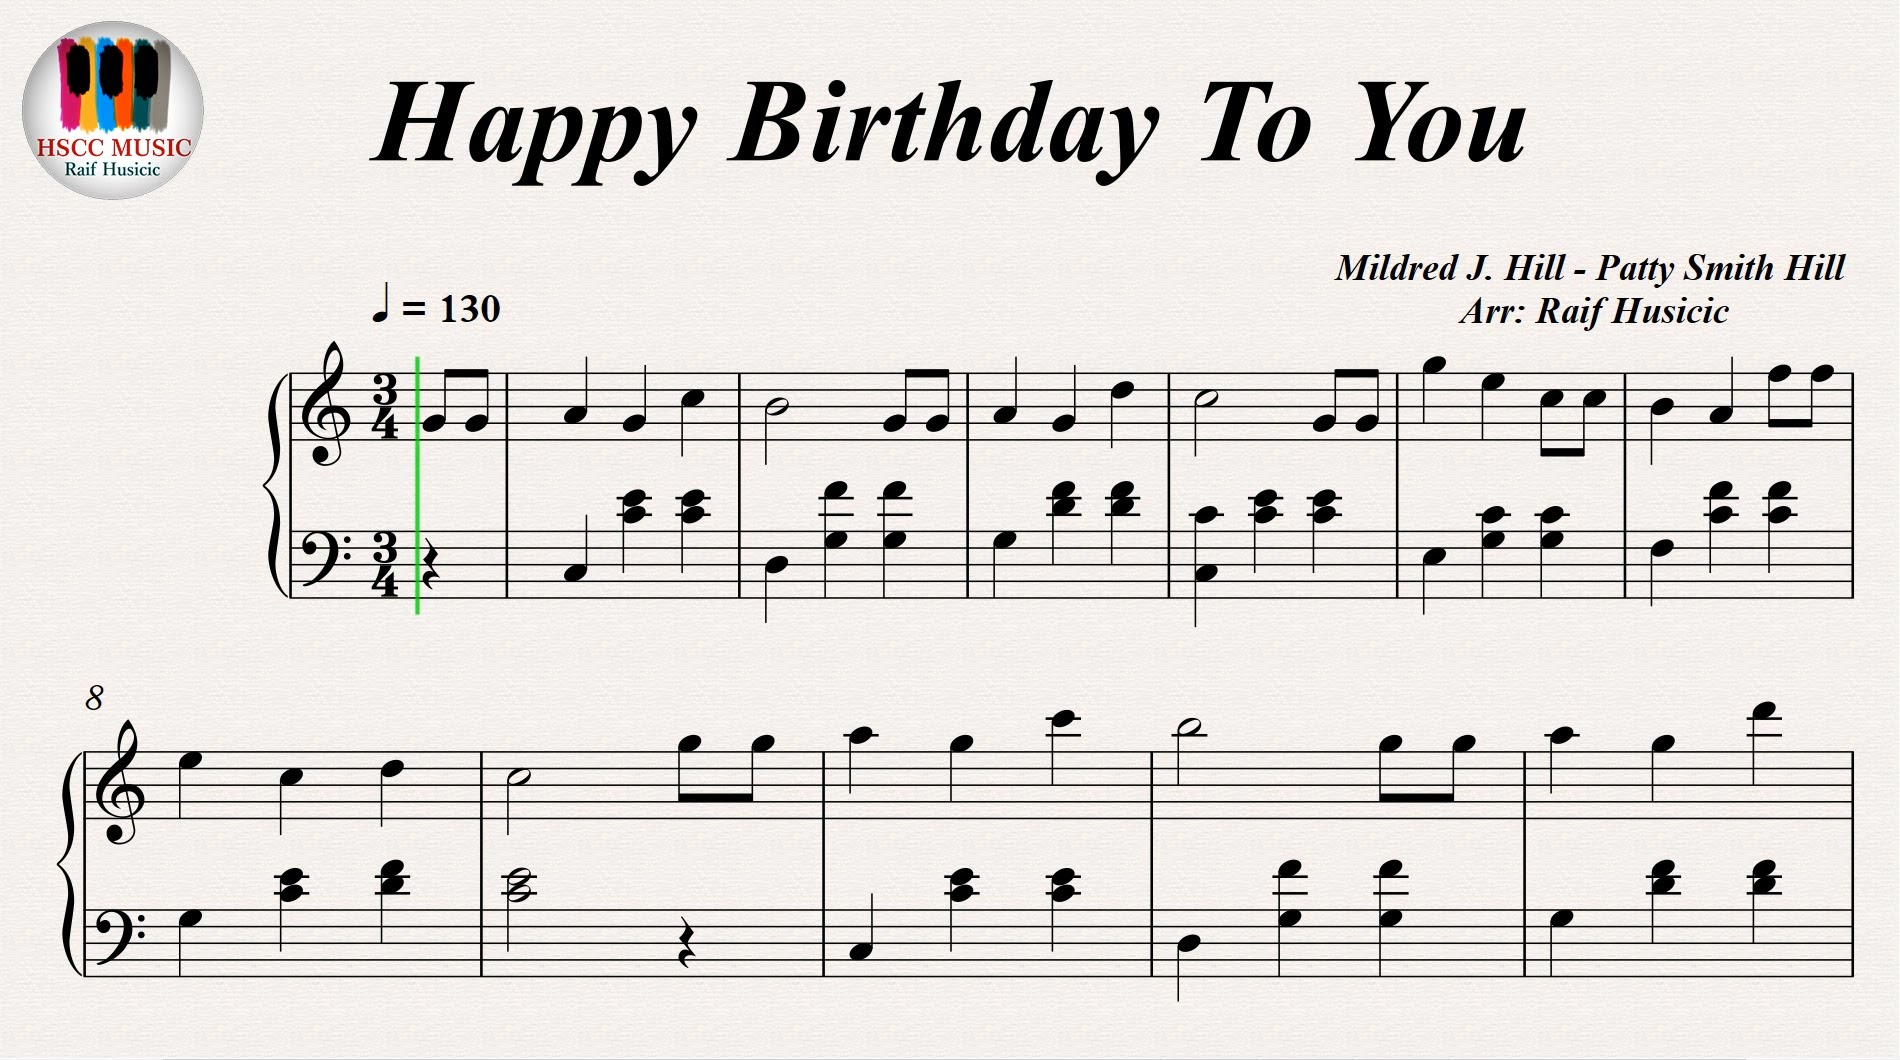 casio notes of happy birthday ; happy-birthday-to-you-piano-notes-maxresdefault